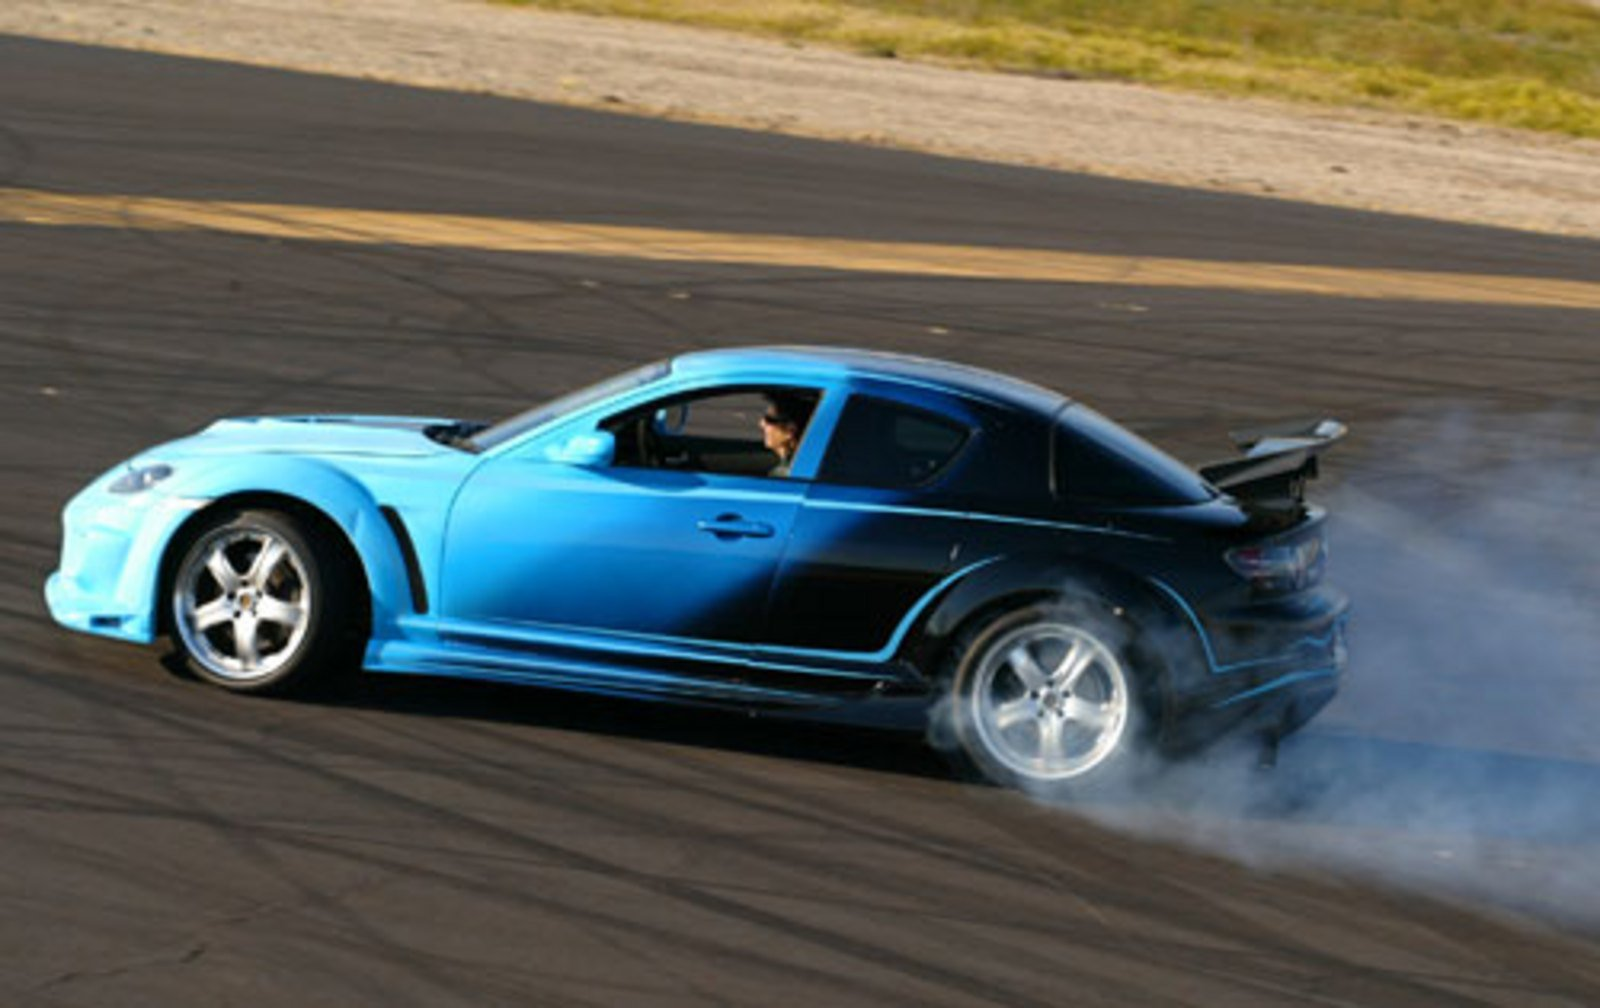 2006 mazda rx8 tokyo drift review top speed. Black Bedroom Furniture Sets. Home Design Ideas